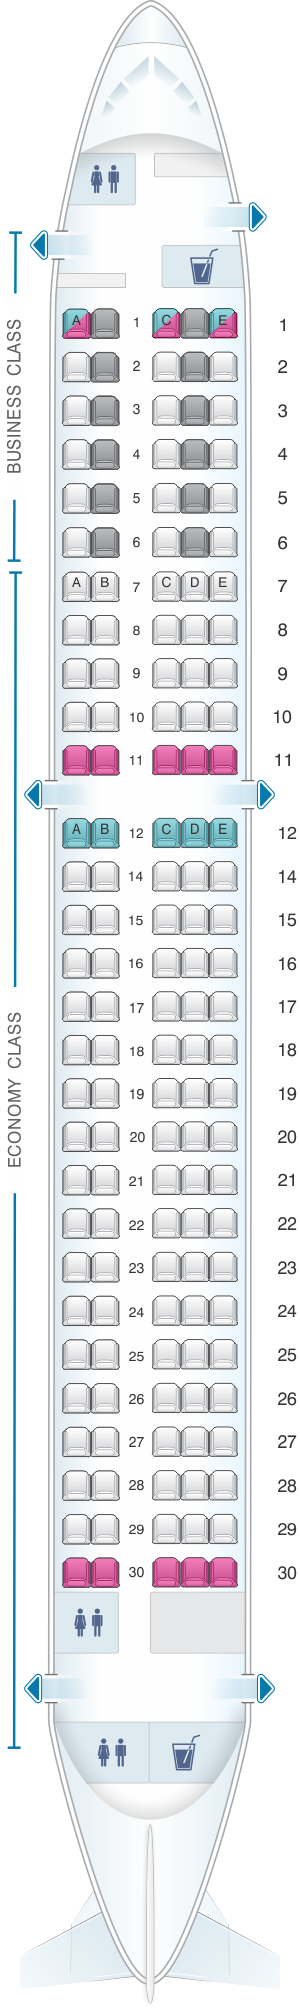 Seat map for SWISS Airbus A220 300